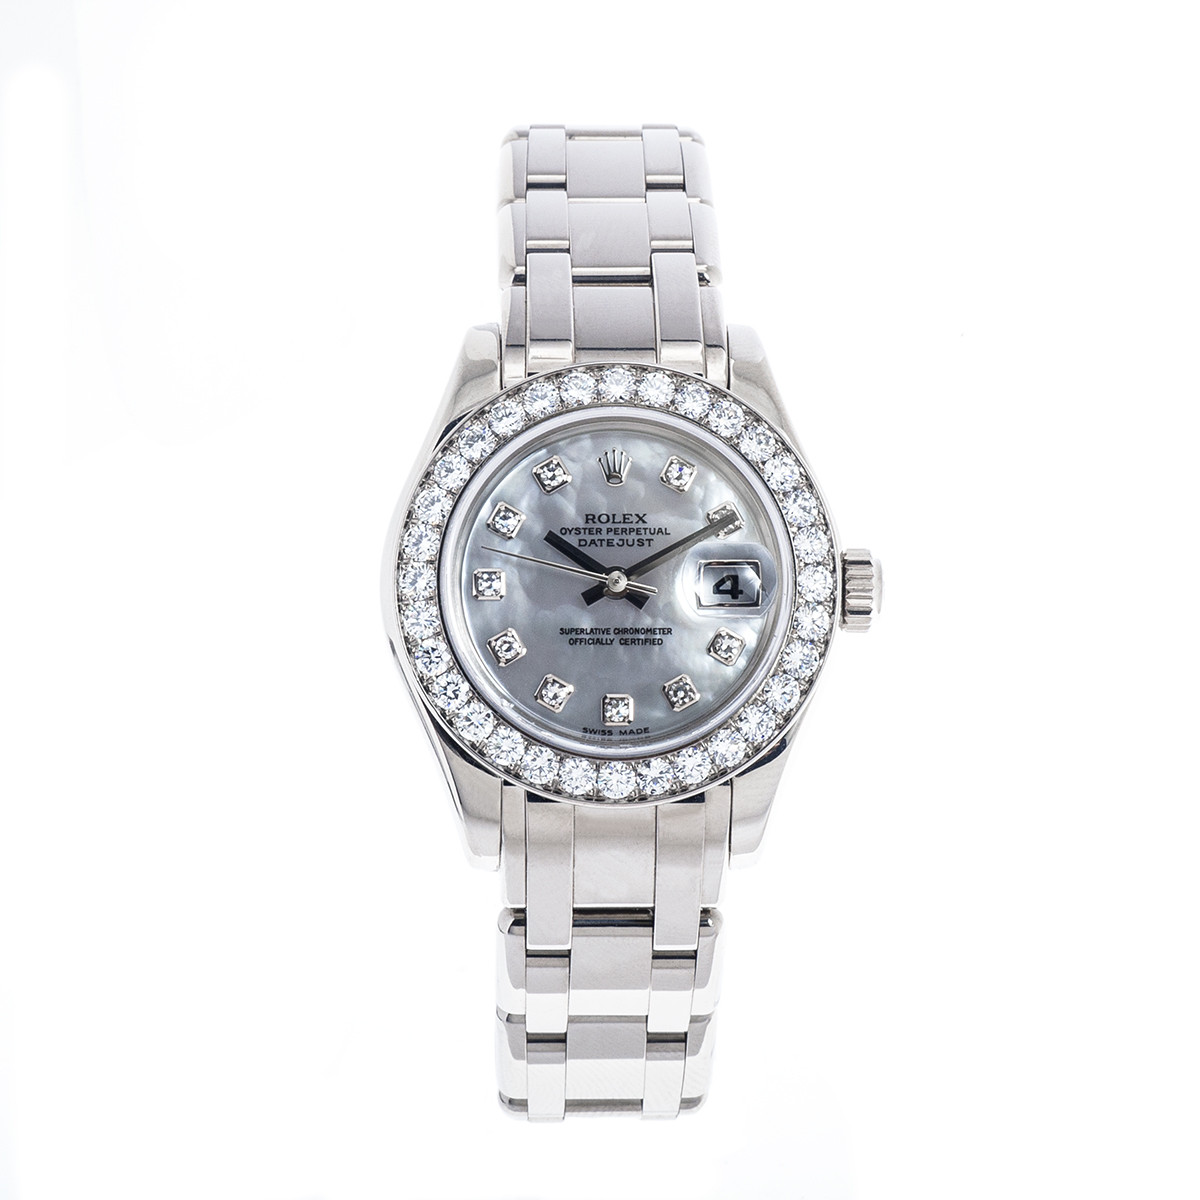 Preowned Women's 18K Gold Rolex Pearlmaster with Diamond Dial & Bezel